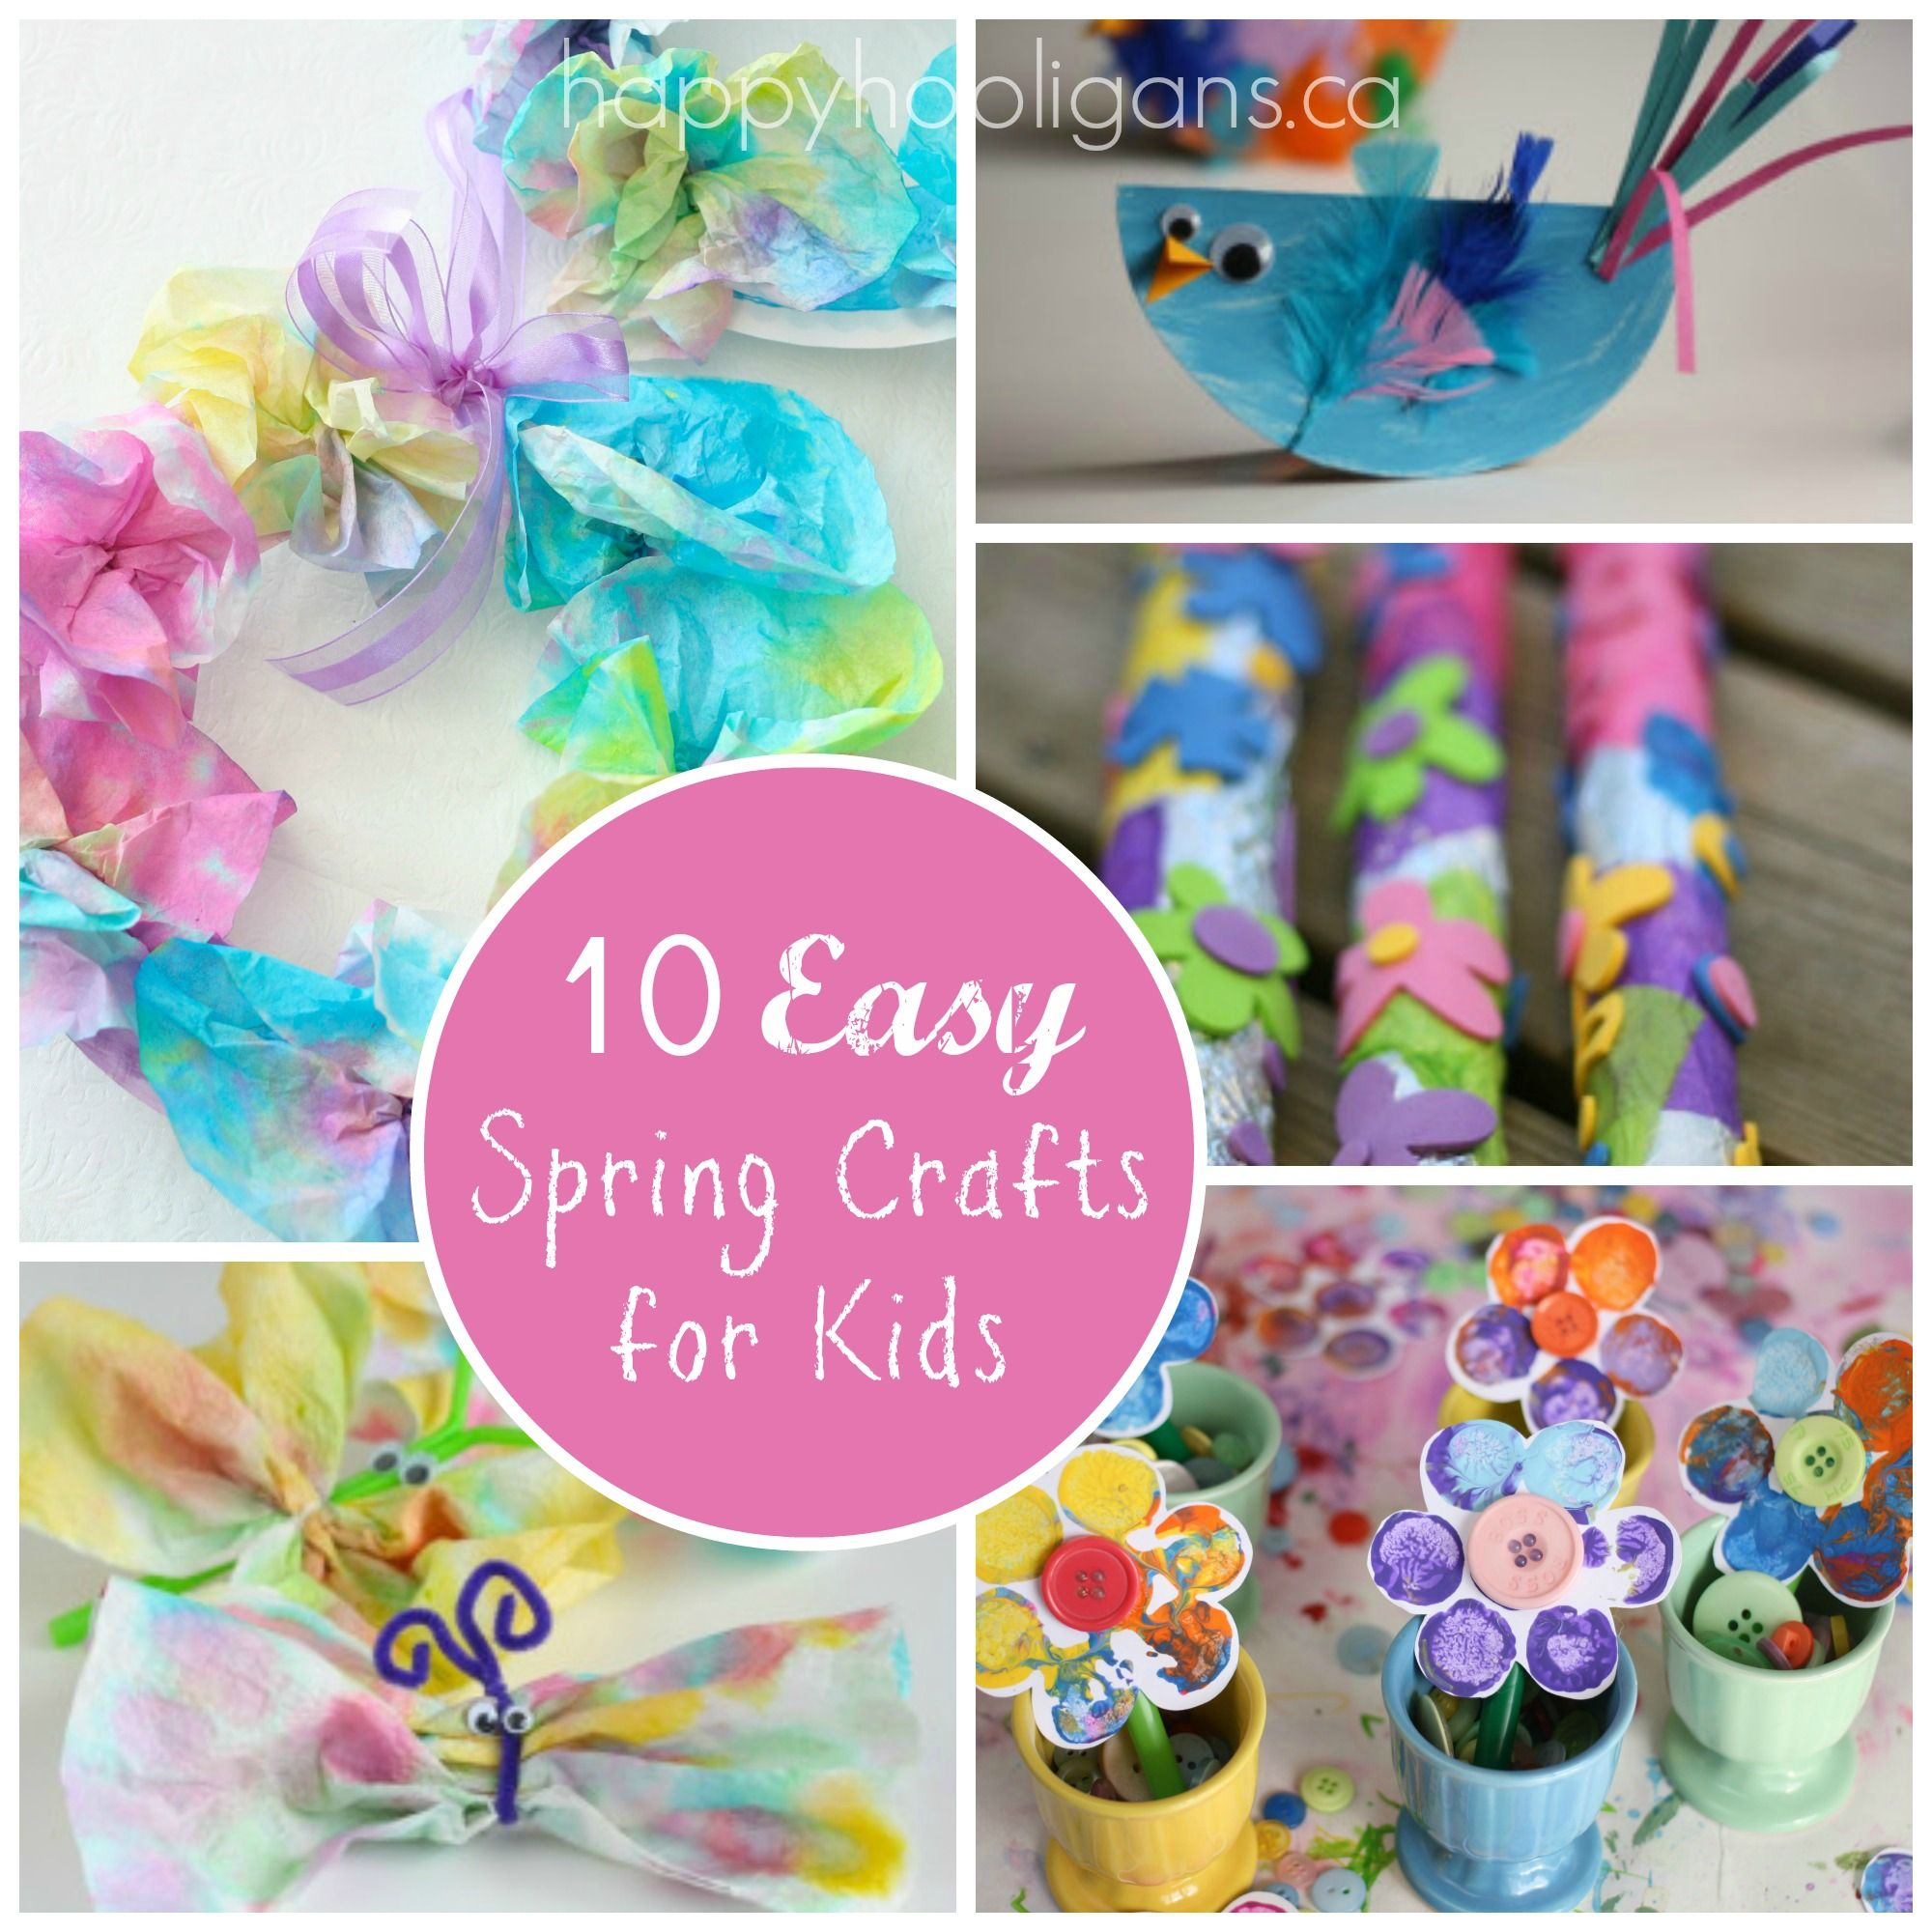 Featured 5 Spring Projects: Spring Break Kids Activity Ideas